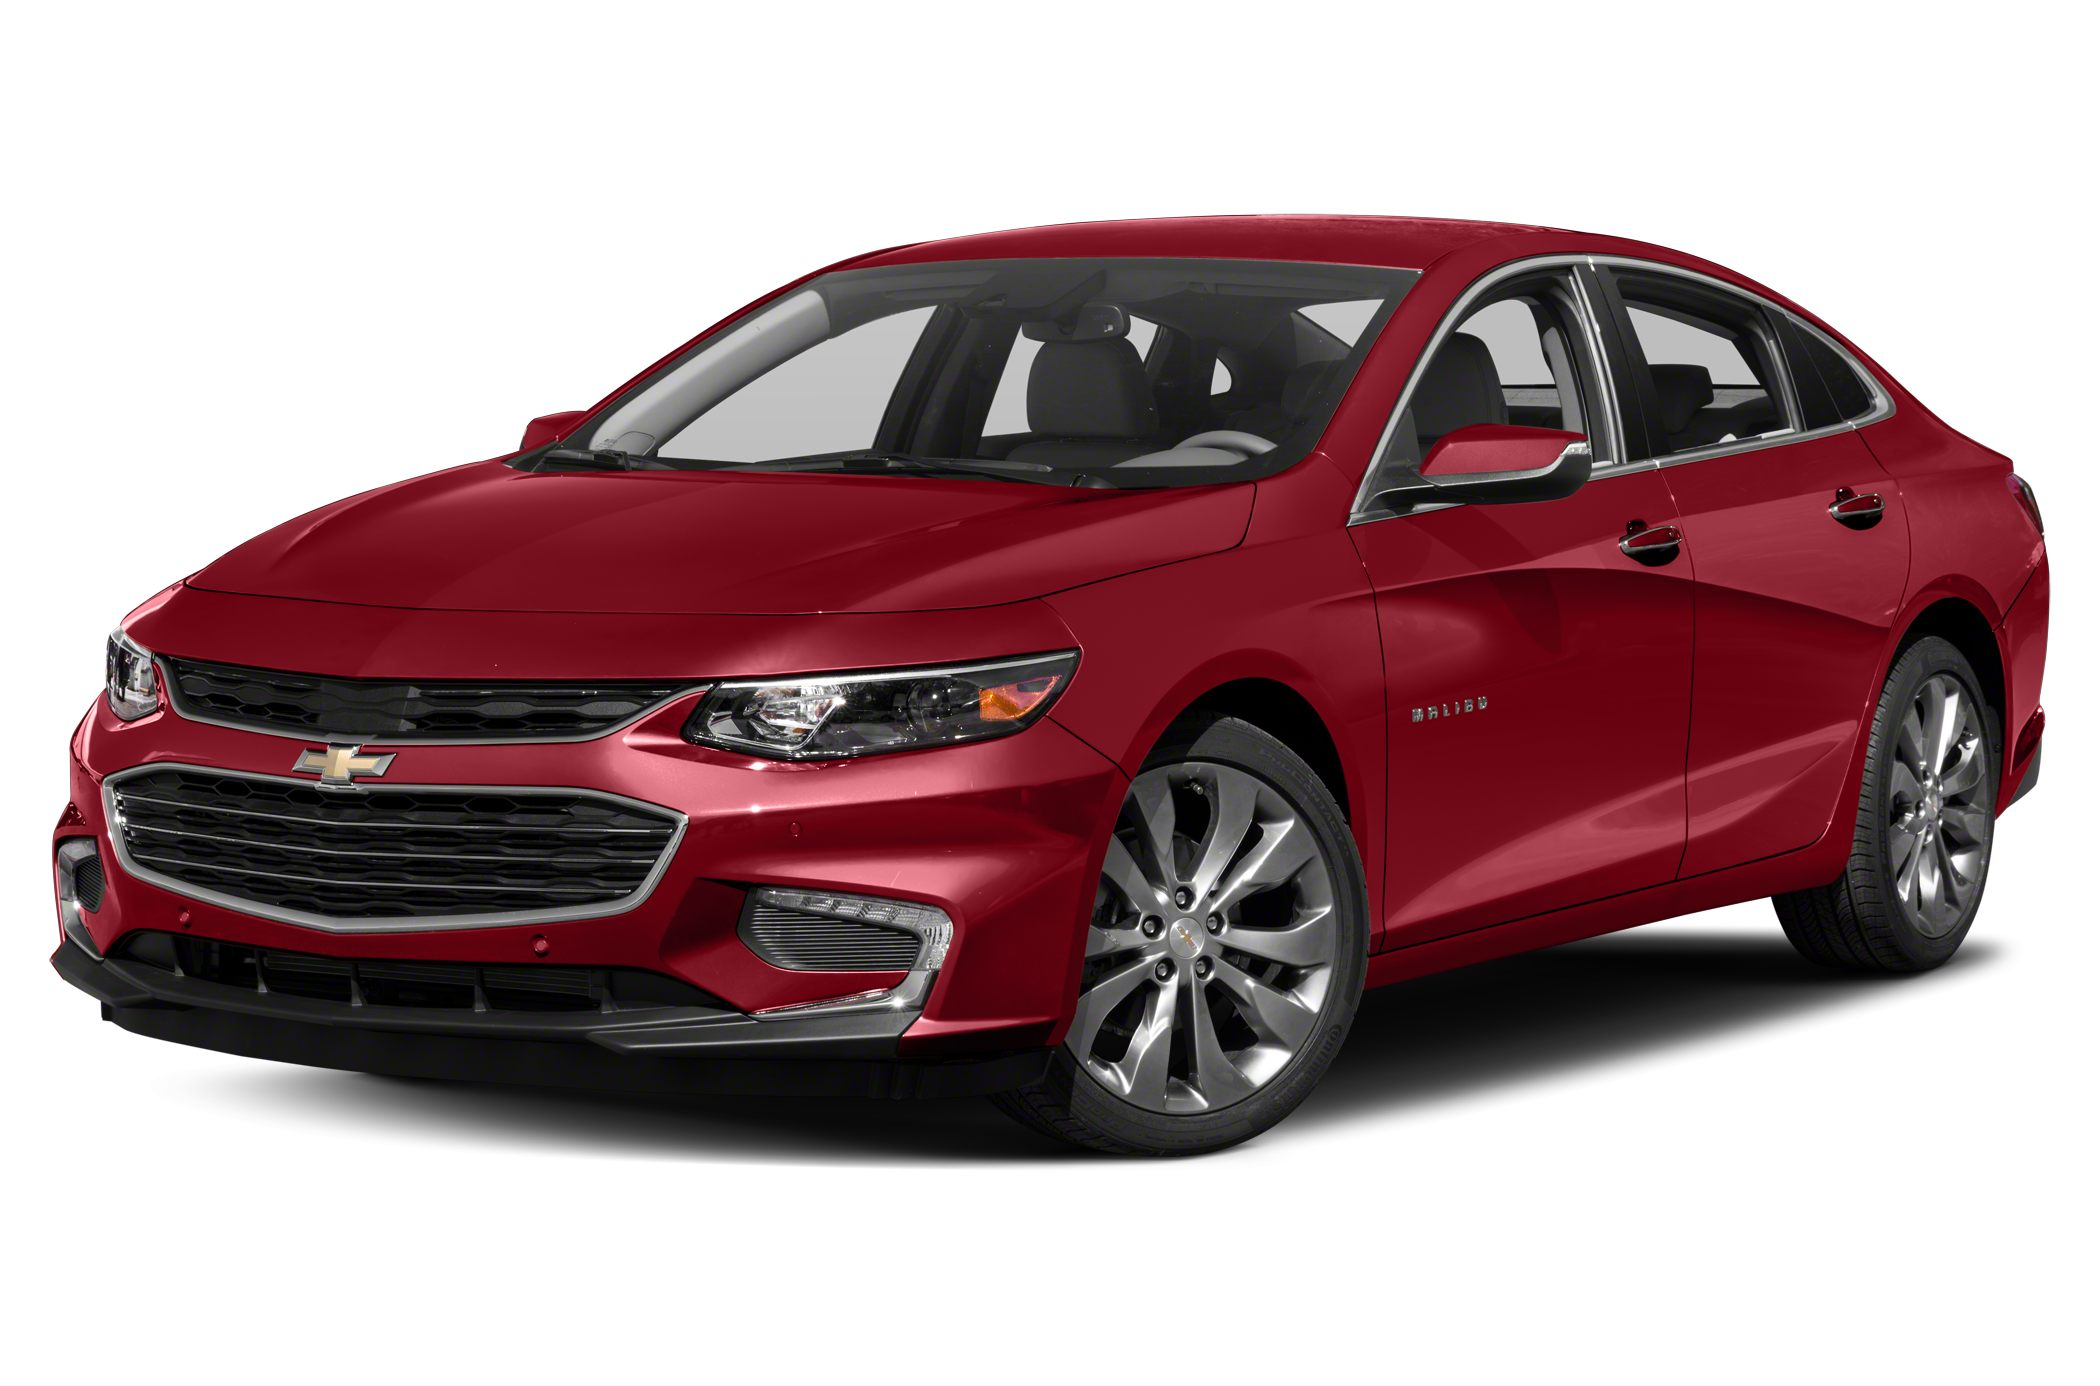 2017 Chevrolet Malibu Reviews, Specs and Prices | Cars.com